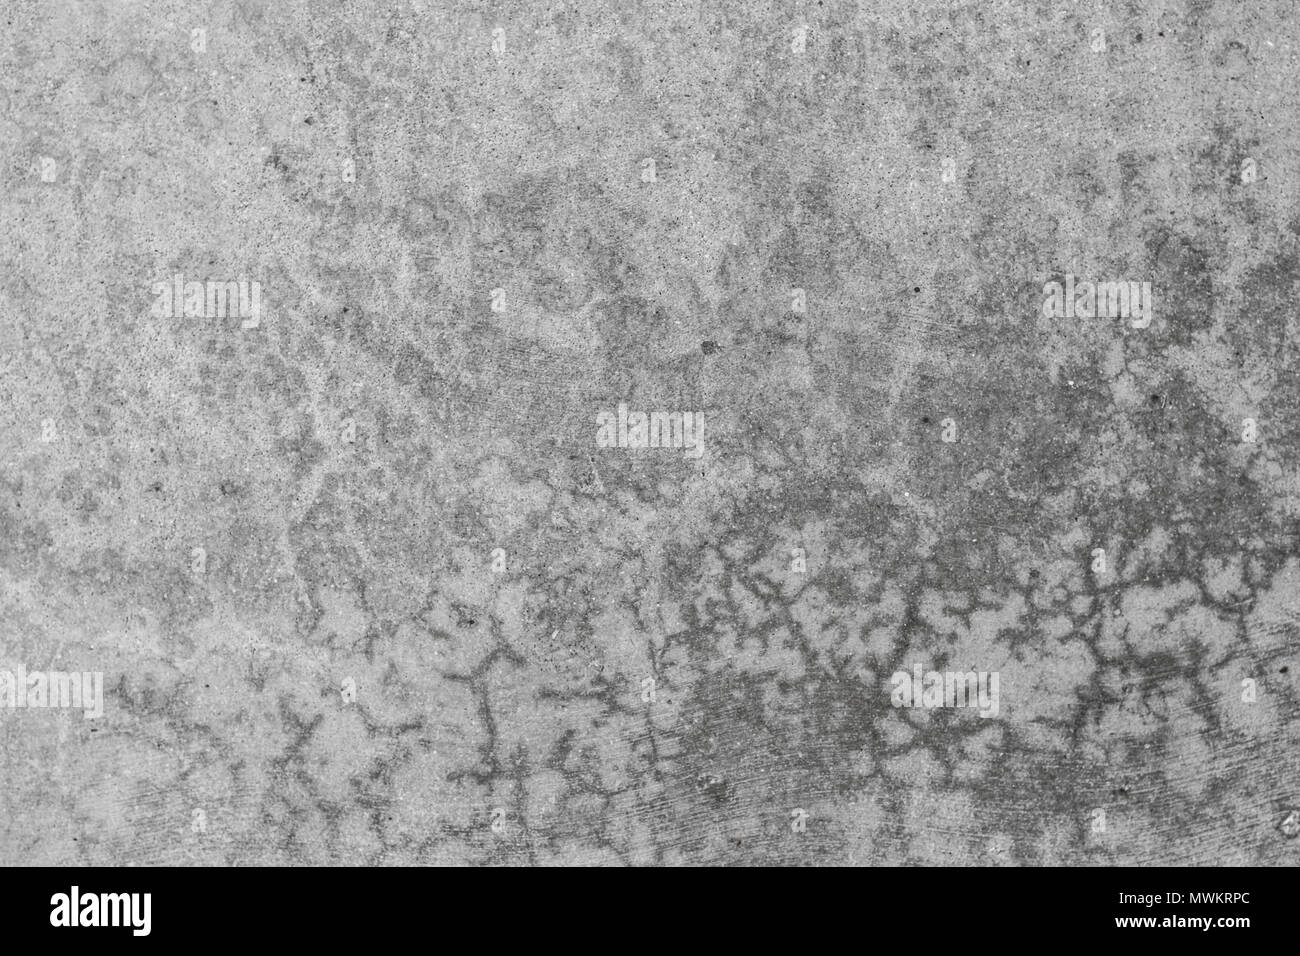 seamless abstract grungy concrete background - Stock Image